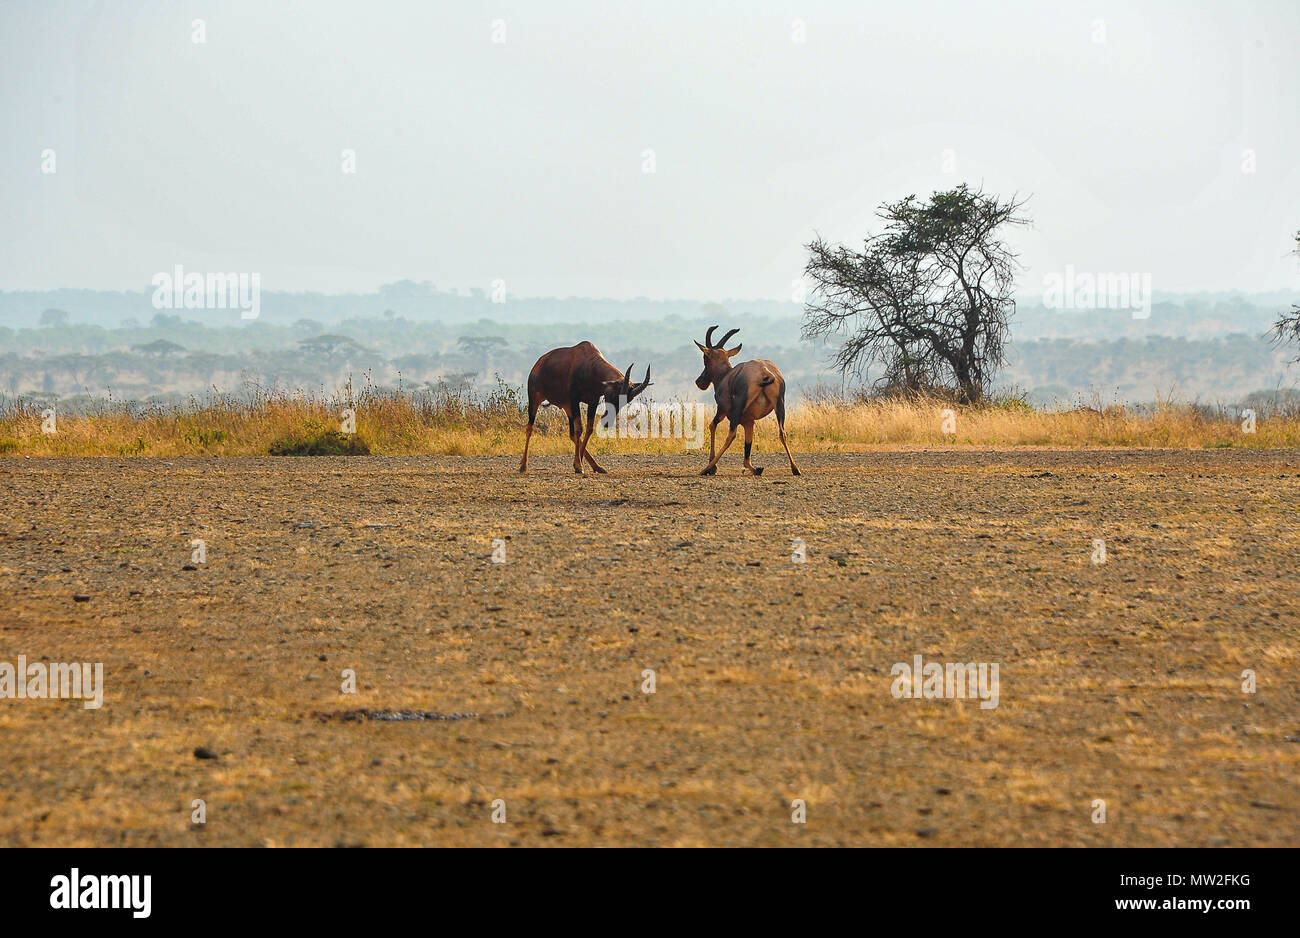 Topi Antelopes (Damaliscus lunatus jimela) fight for territory in an African landscape. Two young males lock horns on dry grassland Stock Photo